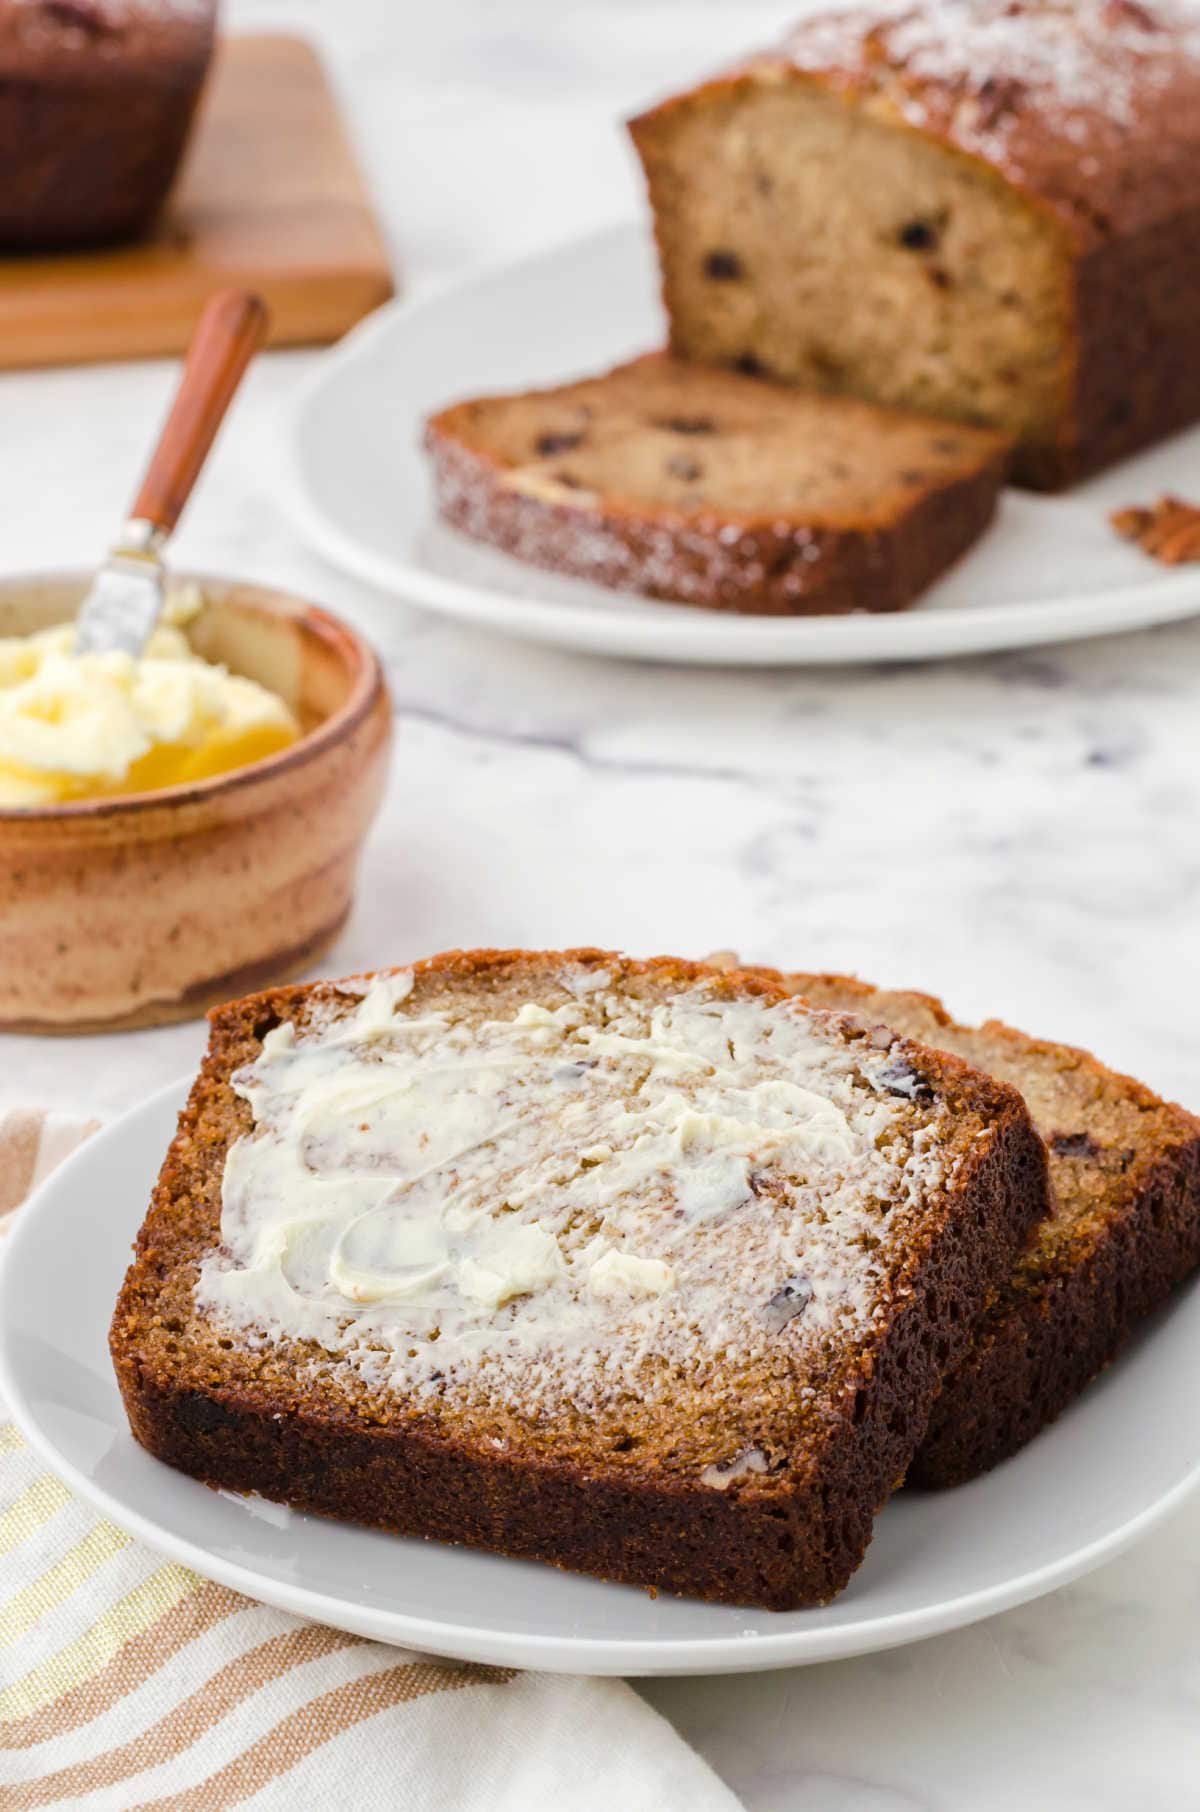 Slices of banana bread on a plate with butter spread over them.